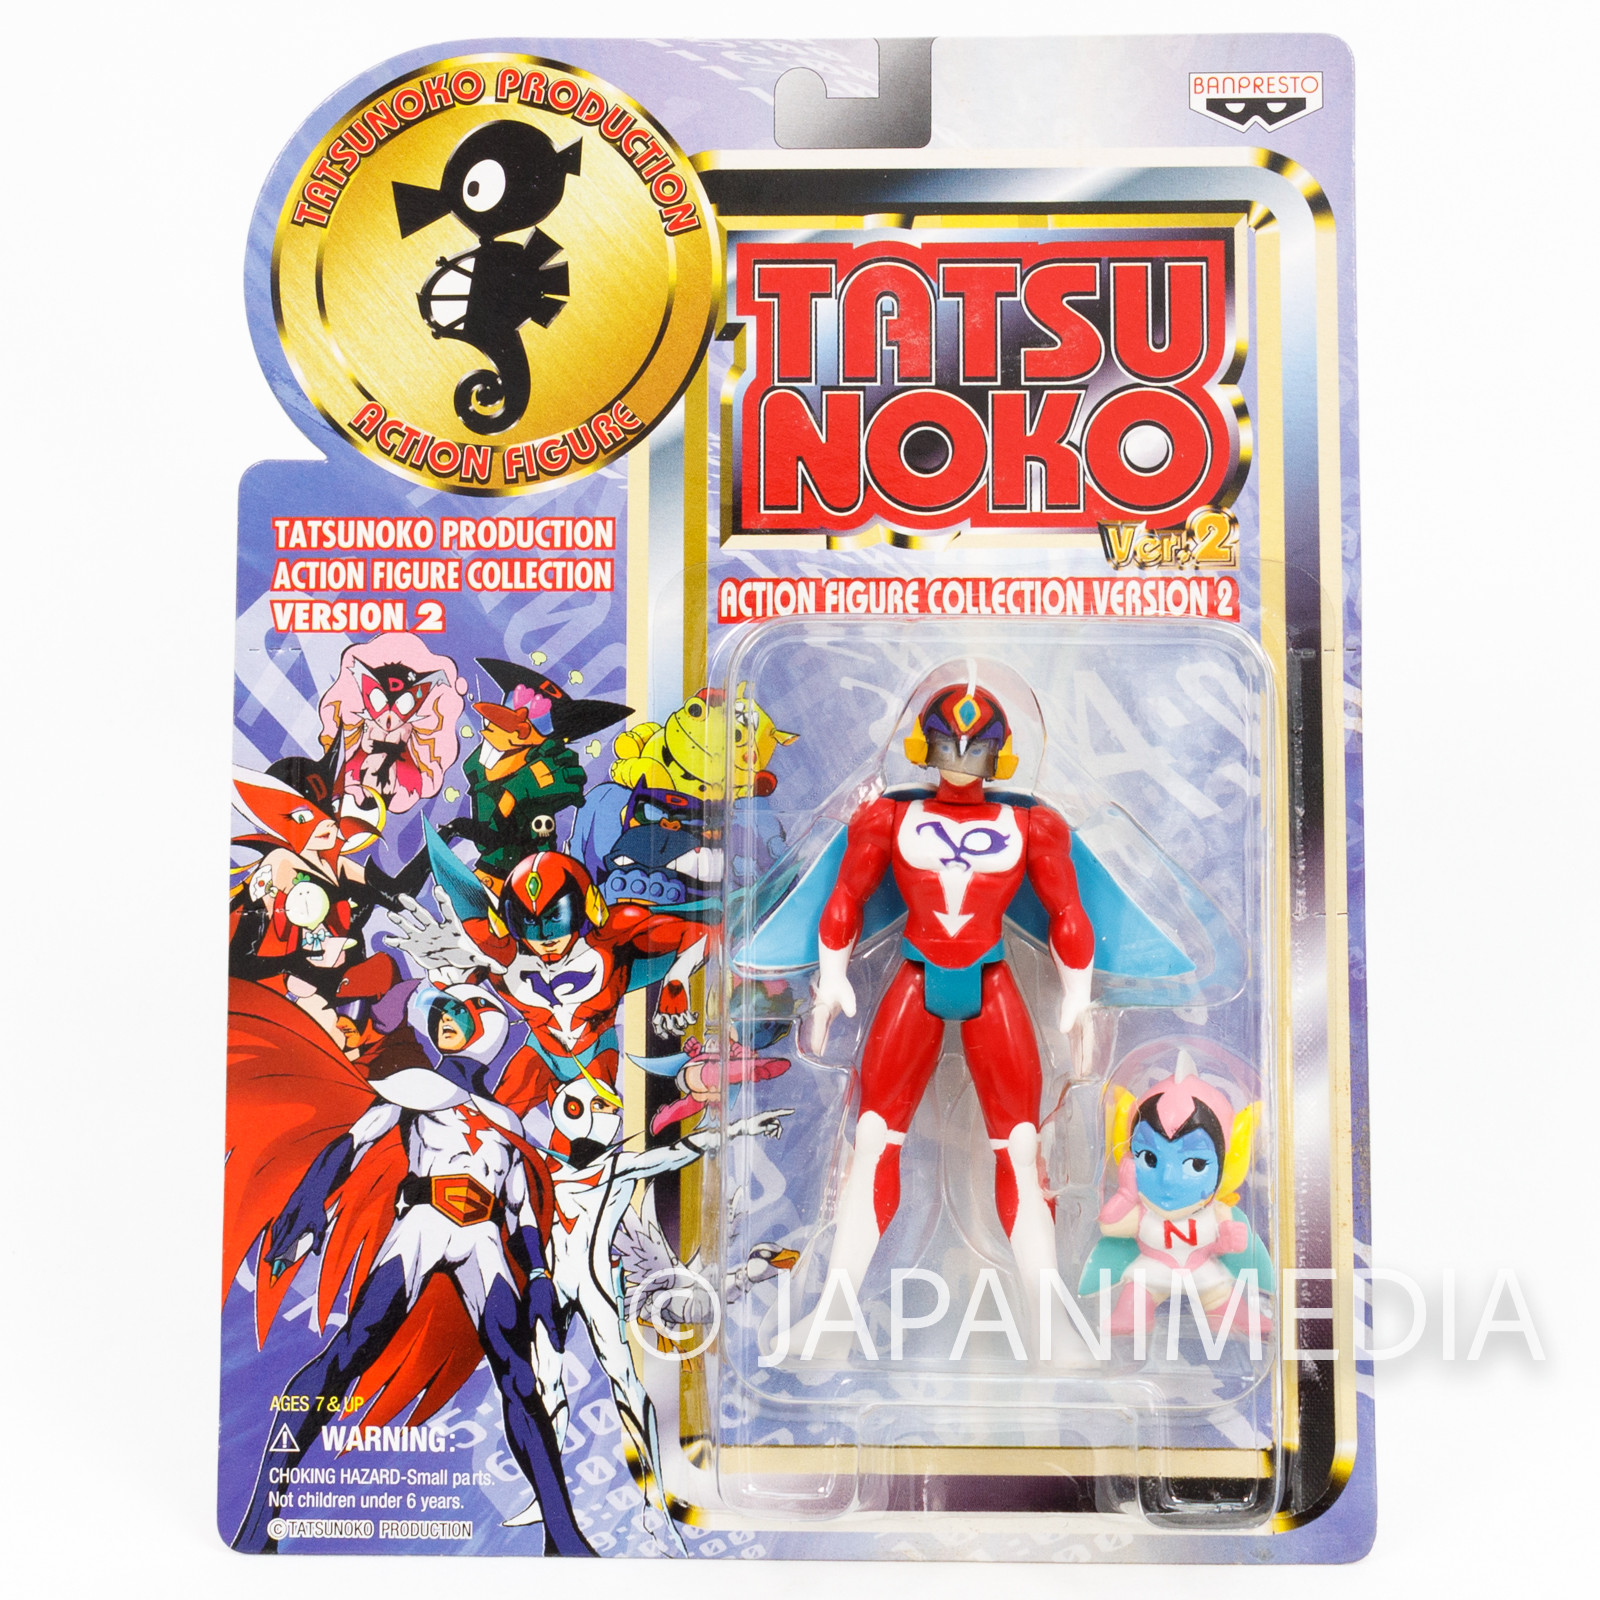 Hurricane Polymar Tatsunoko Production Action Figure Collection JAPAN ANIME MANGA 2